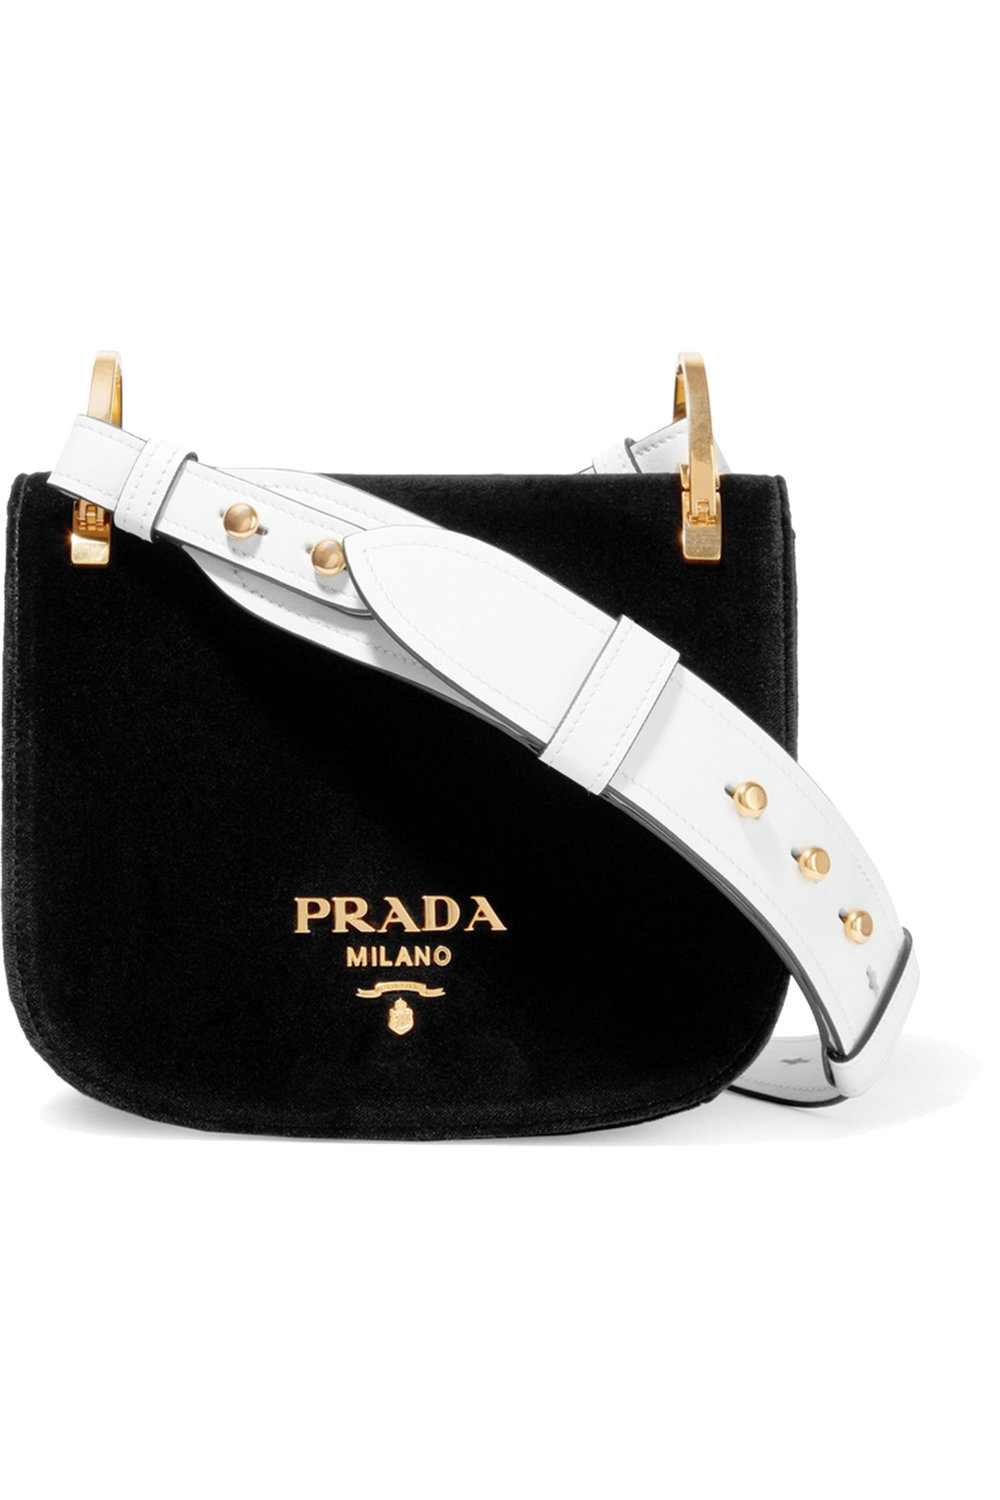 Prada Pionnière Velvet and Leather Shoulder Bag US$ 1,790